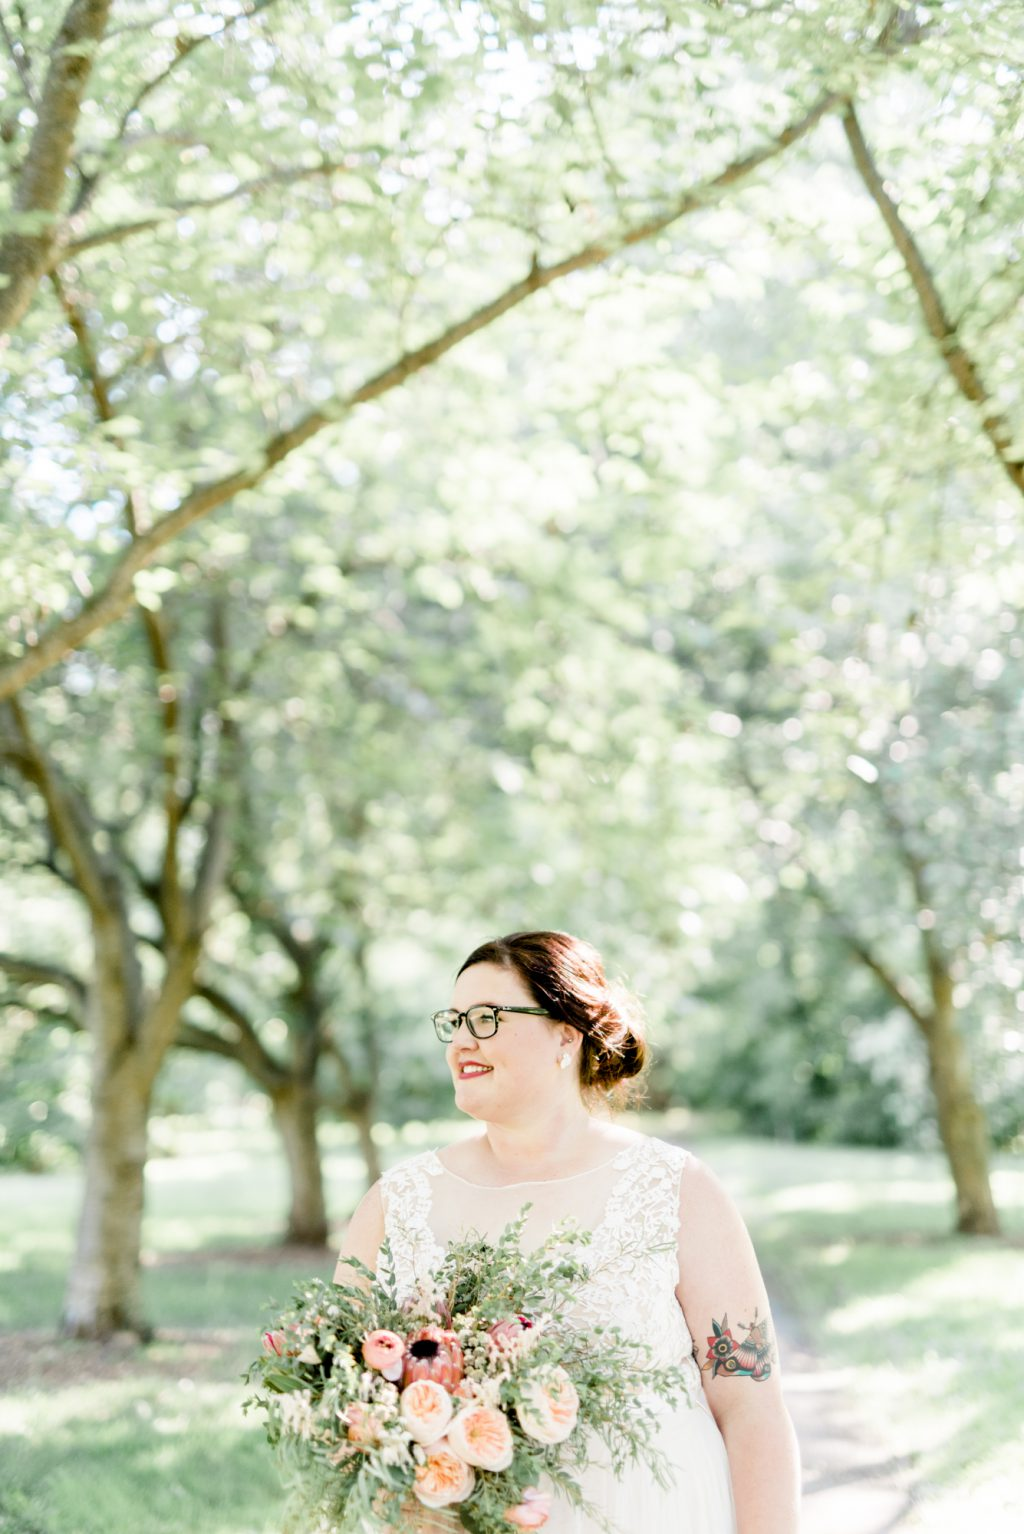 haley-richter-photo-west-chester-summer-wedding-boxcar-brewery-145